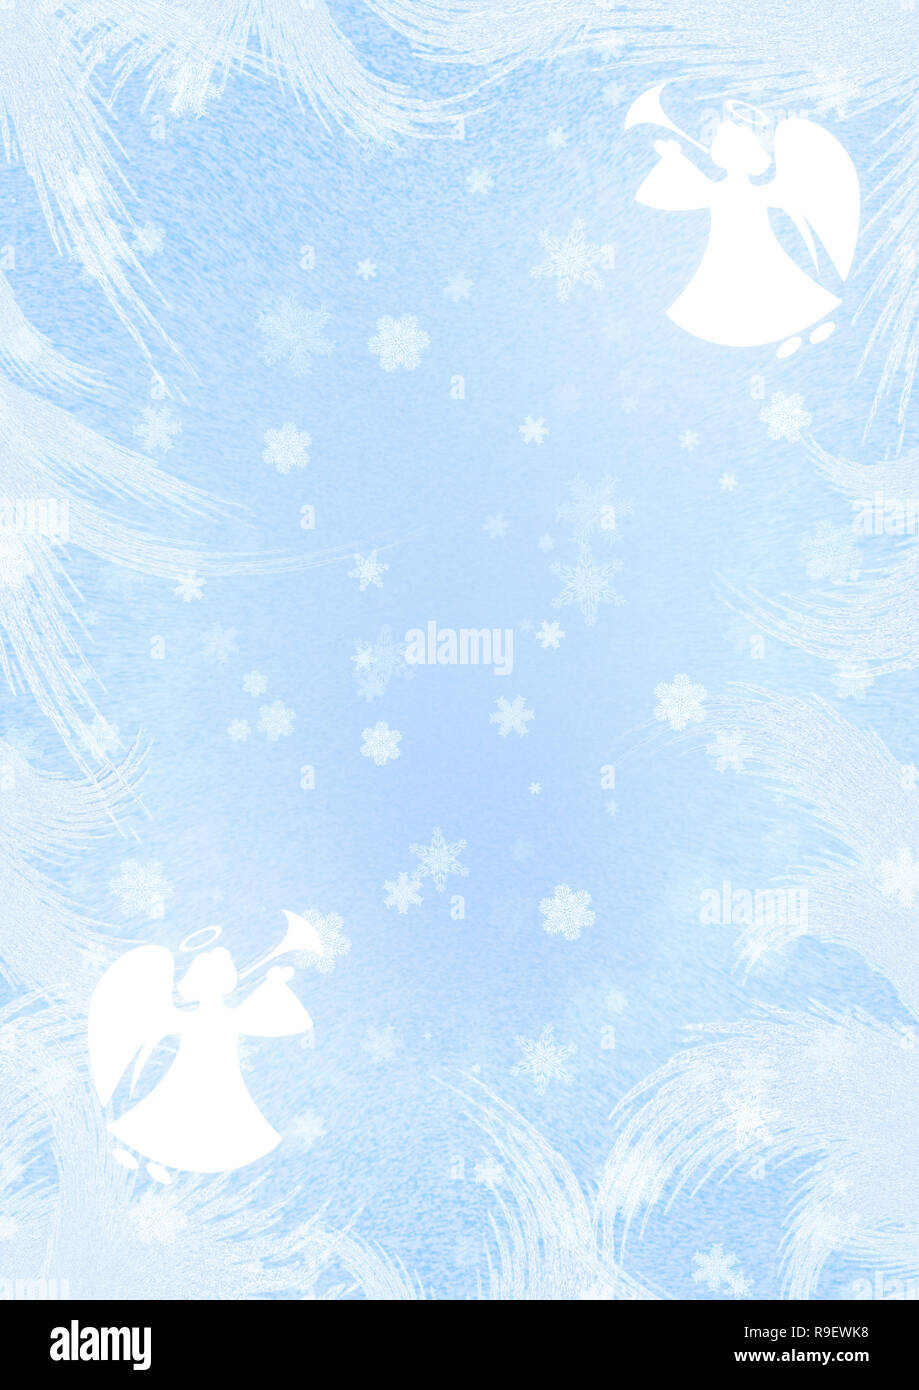 Angels Christmas Background.Christmas Blue Background With Angels And Snowflakes Stock